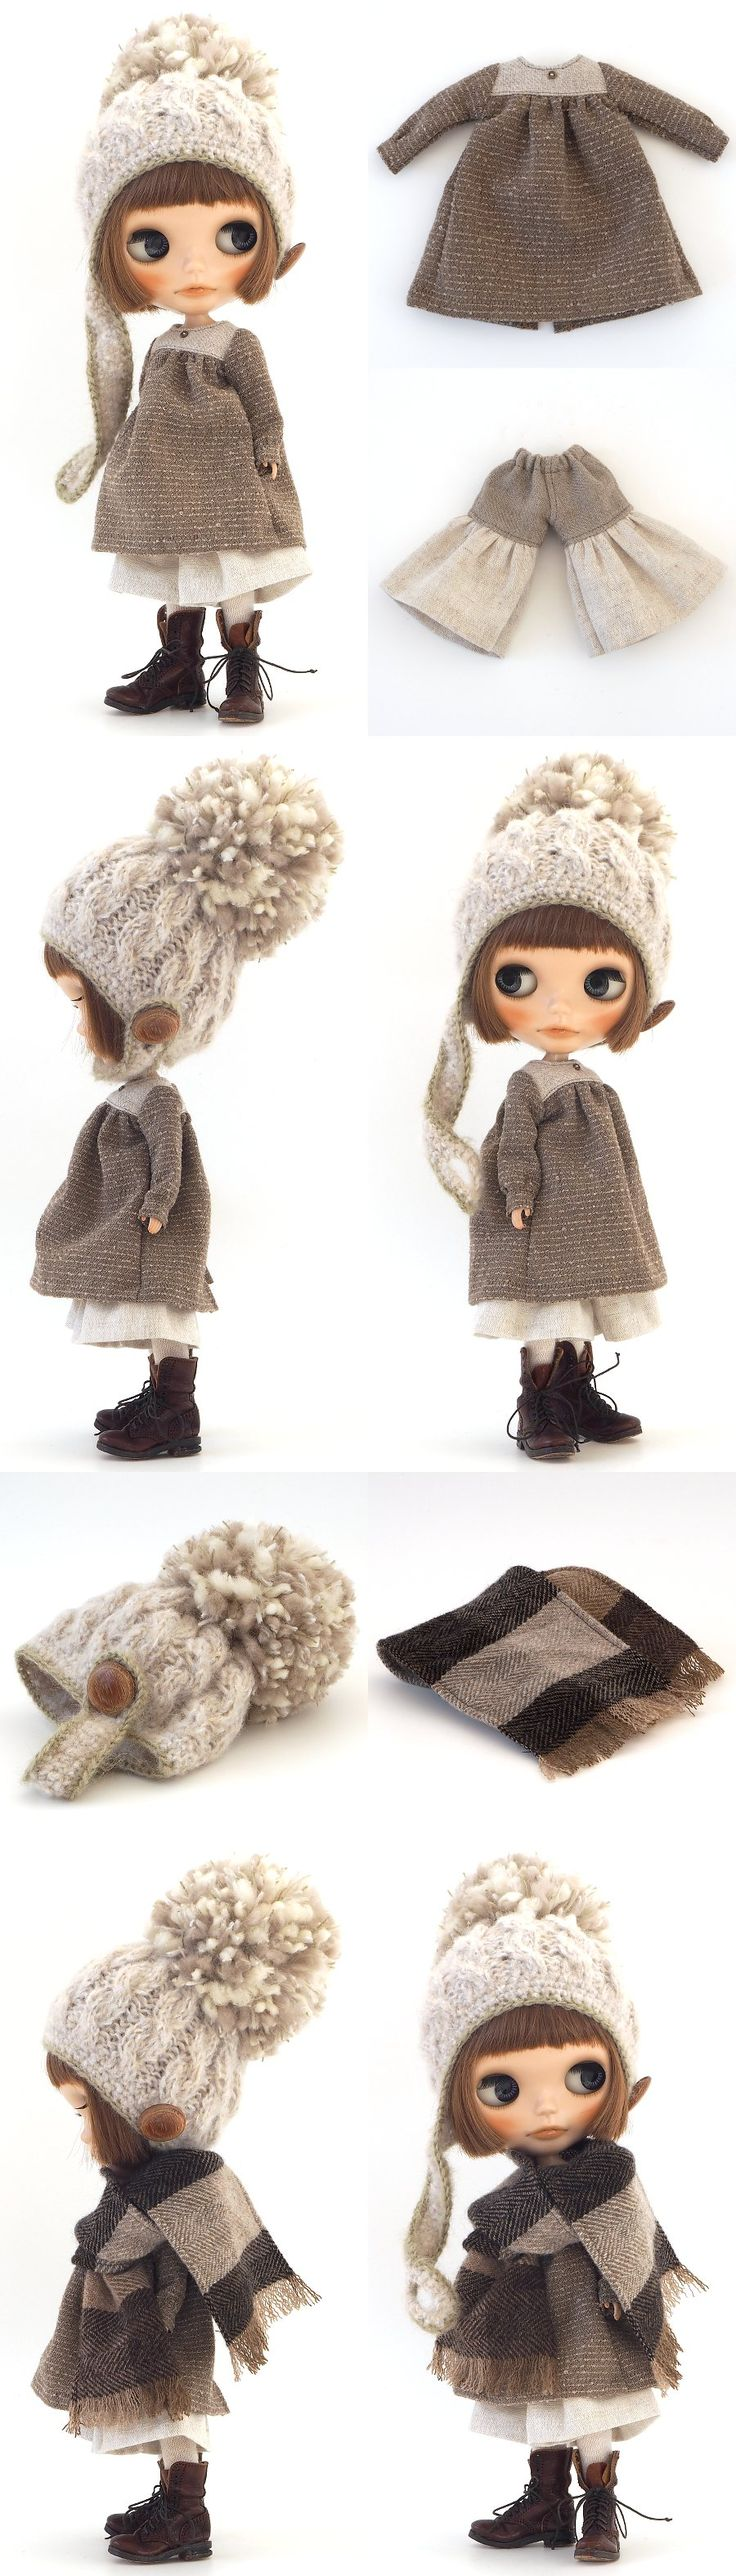 blythe outfit